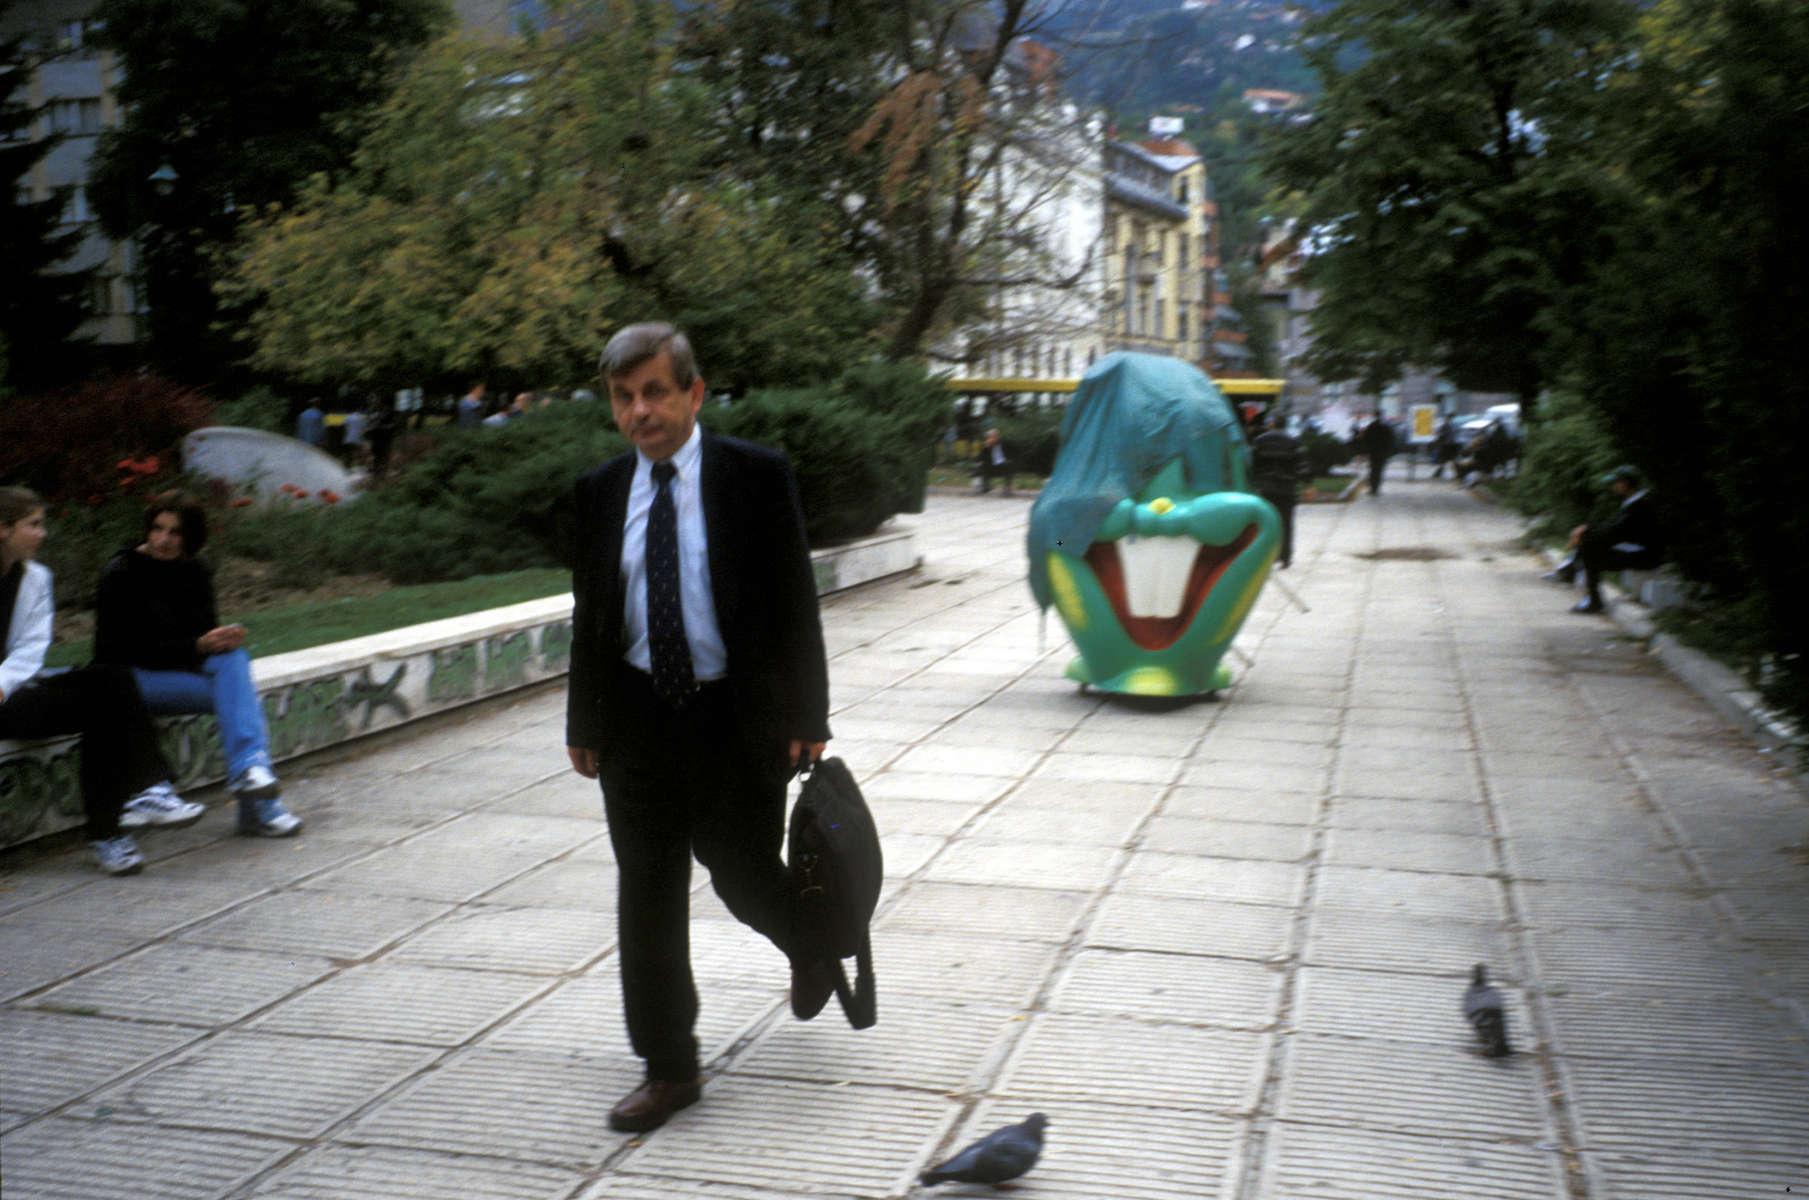 Street scene in the center of Sarajevo. The partially covered rabbit head is a popcorn machine being wheeled to a nearby street corner. April 2002.